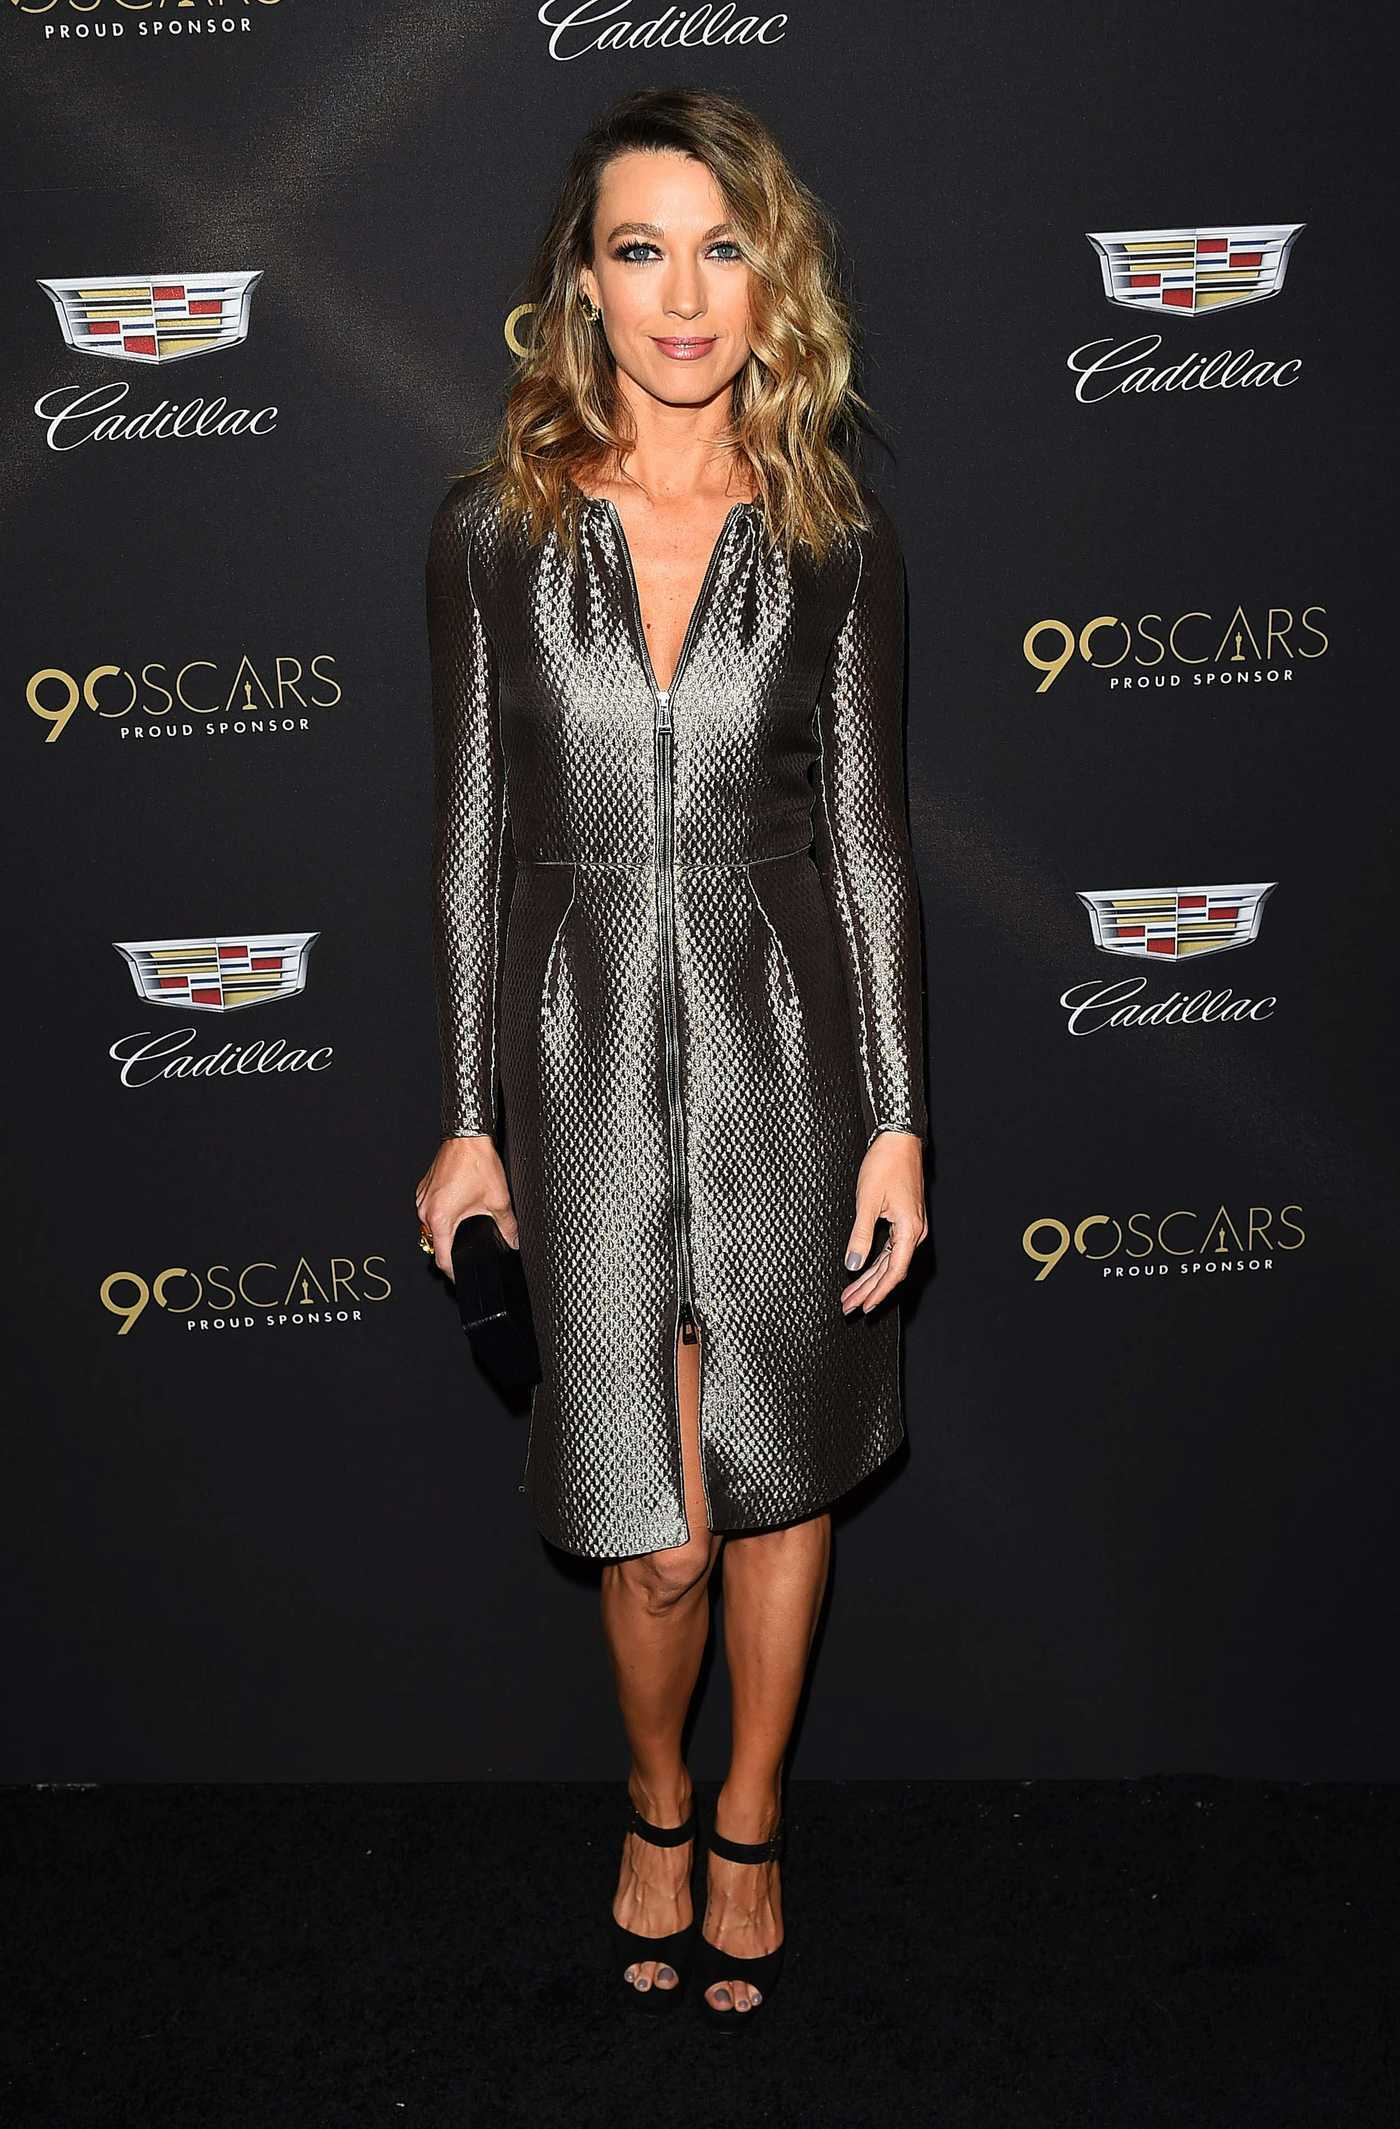 Natalie Zea at the Cadillac Oscar Celebration in Los Angeles 03/01/2018